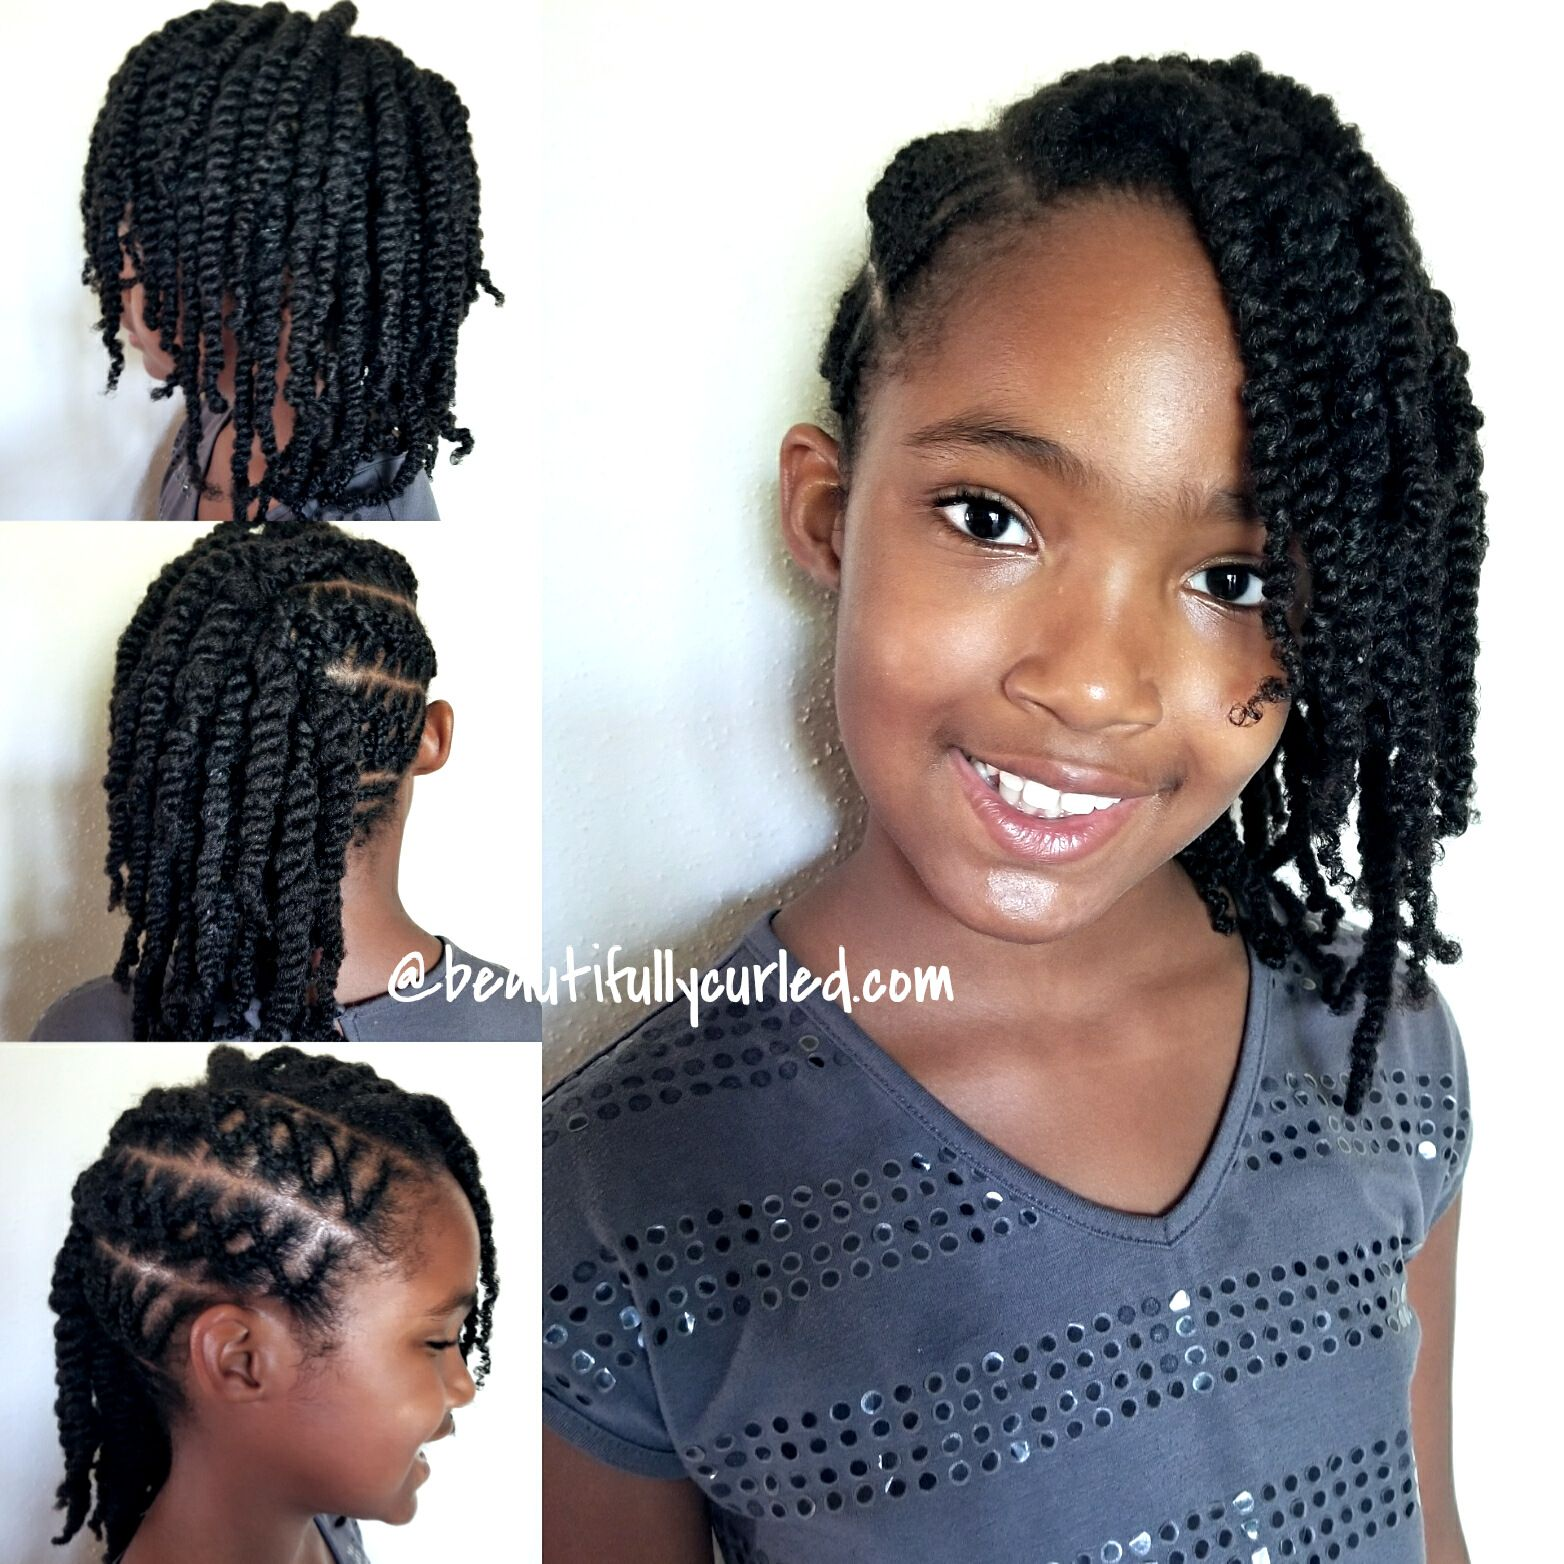 Criss Cross Cornrow Braids with Side Twists First Attempt